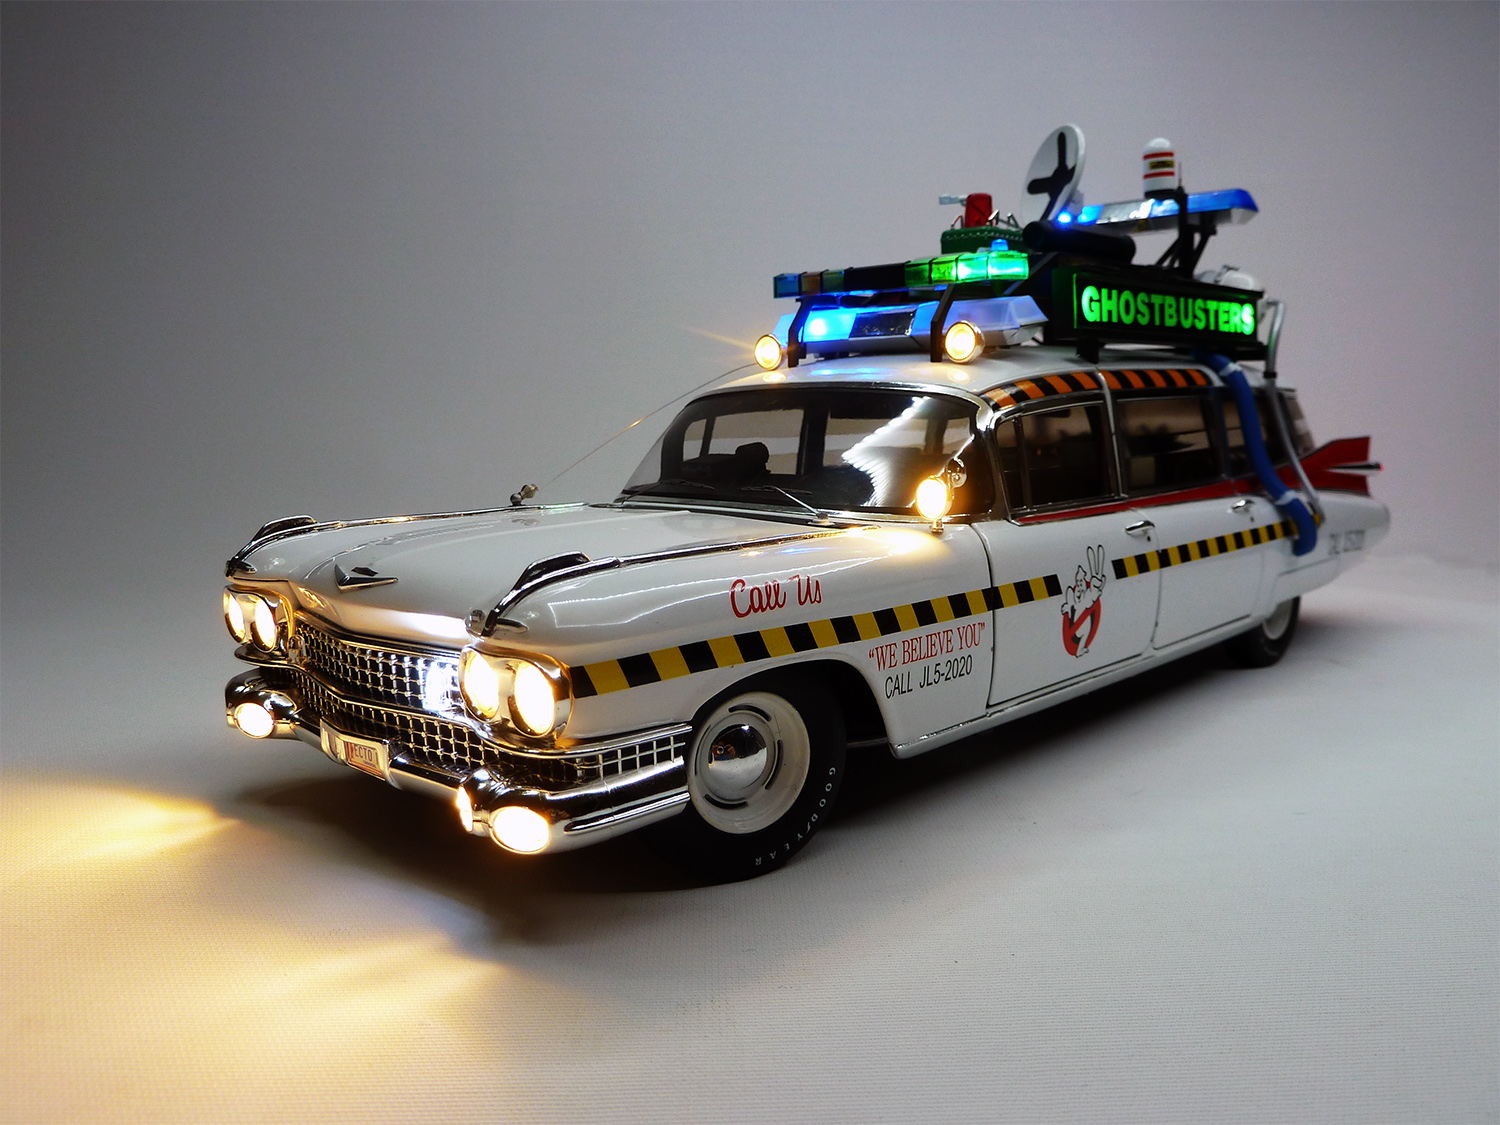 cadillac ghostbusters ecto 1. Black Bedroom Furniture Sets. Home Design Ideas